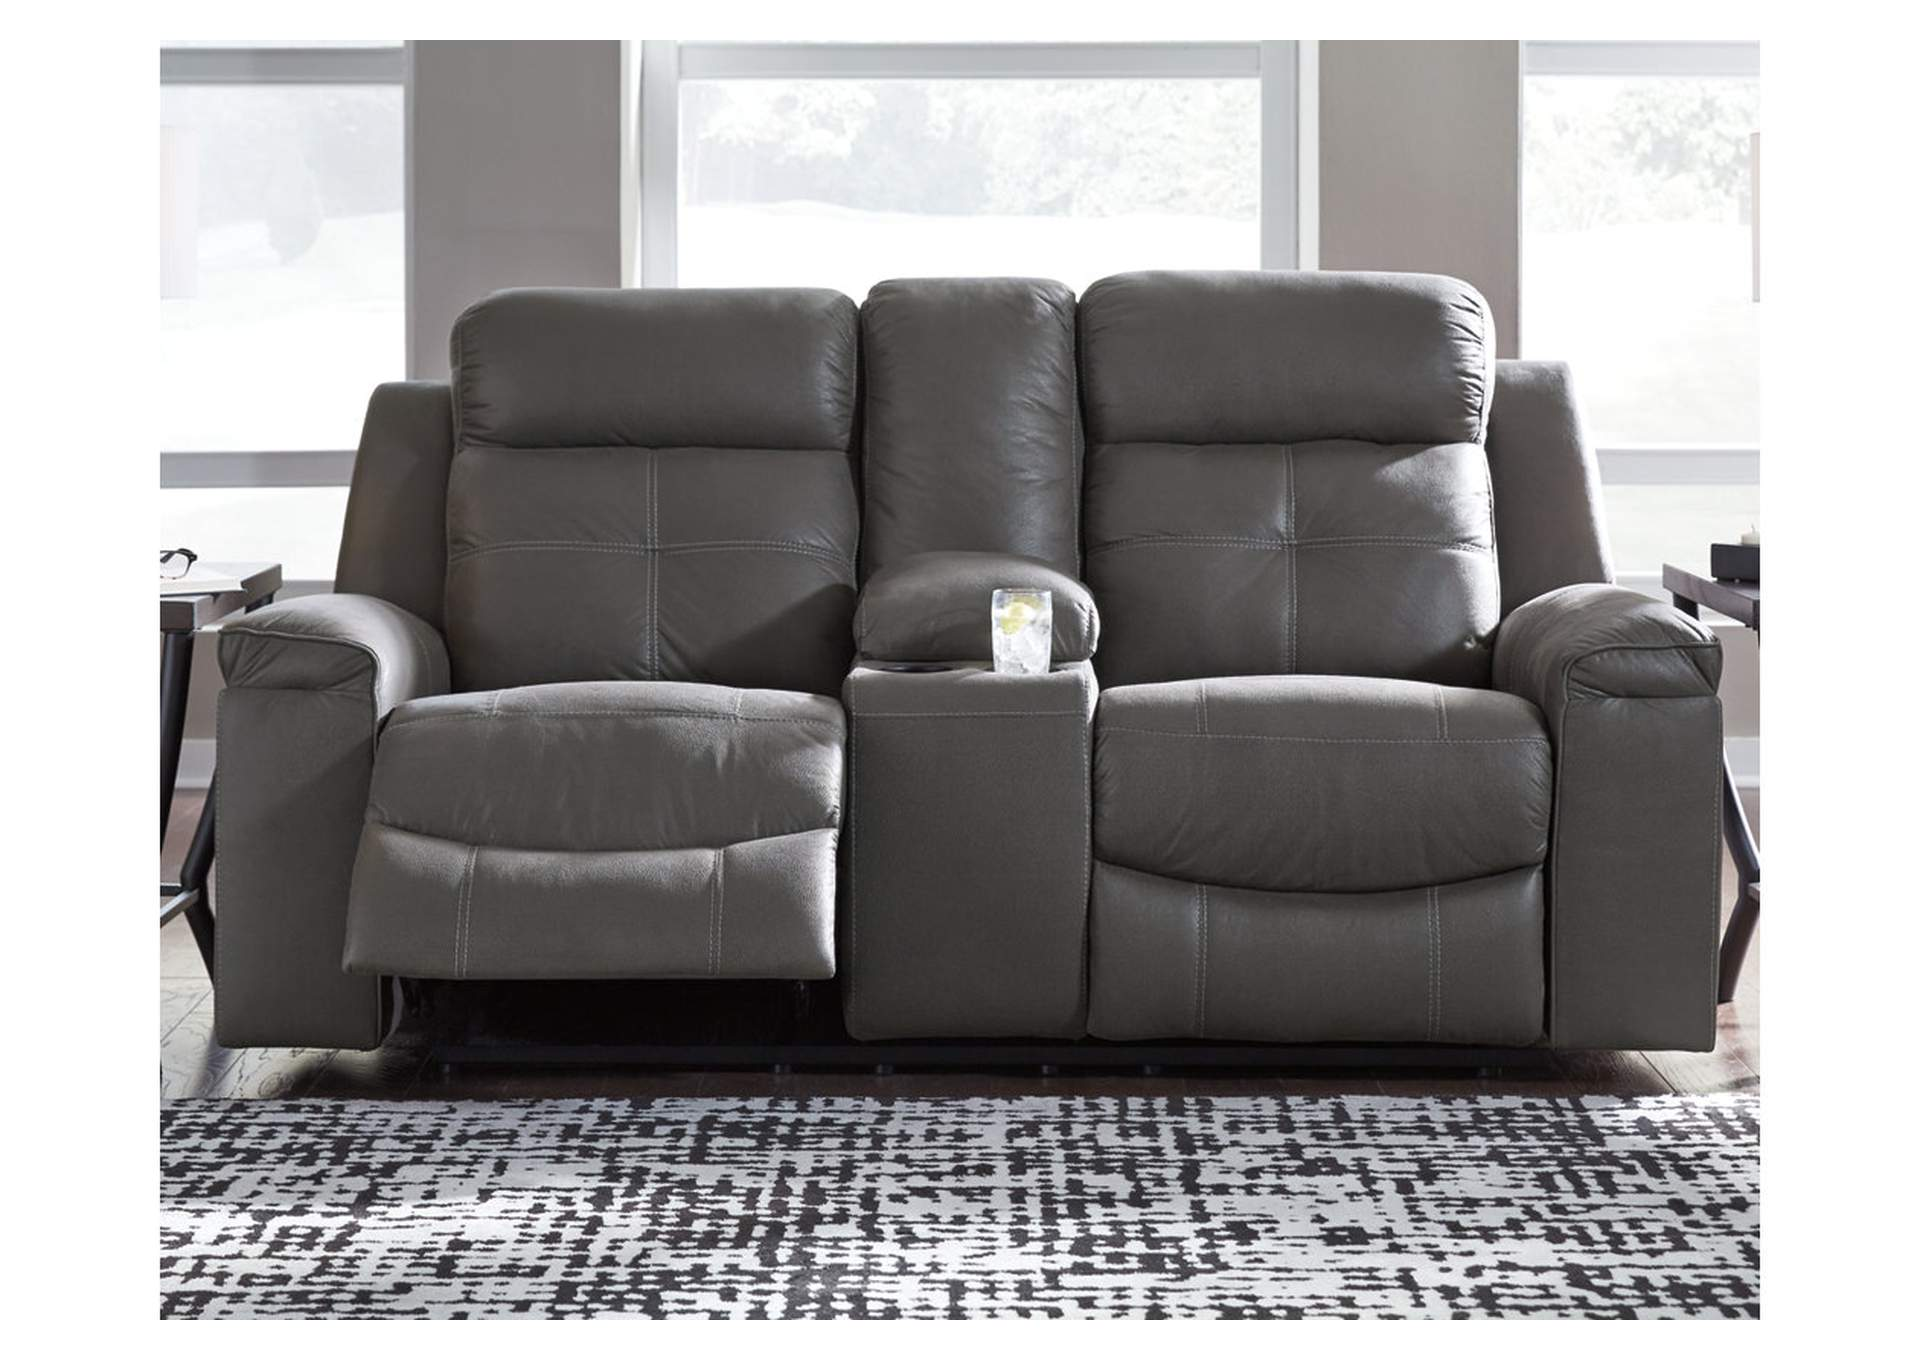 Jesolo Dark Gray Double Recliner Loveseat w/Console,Signature Design By Ashley